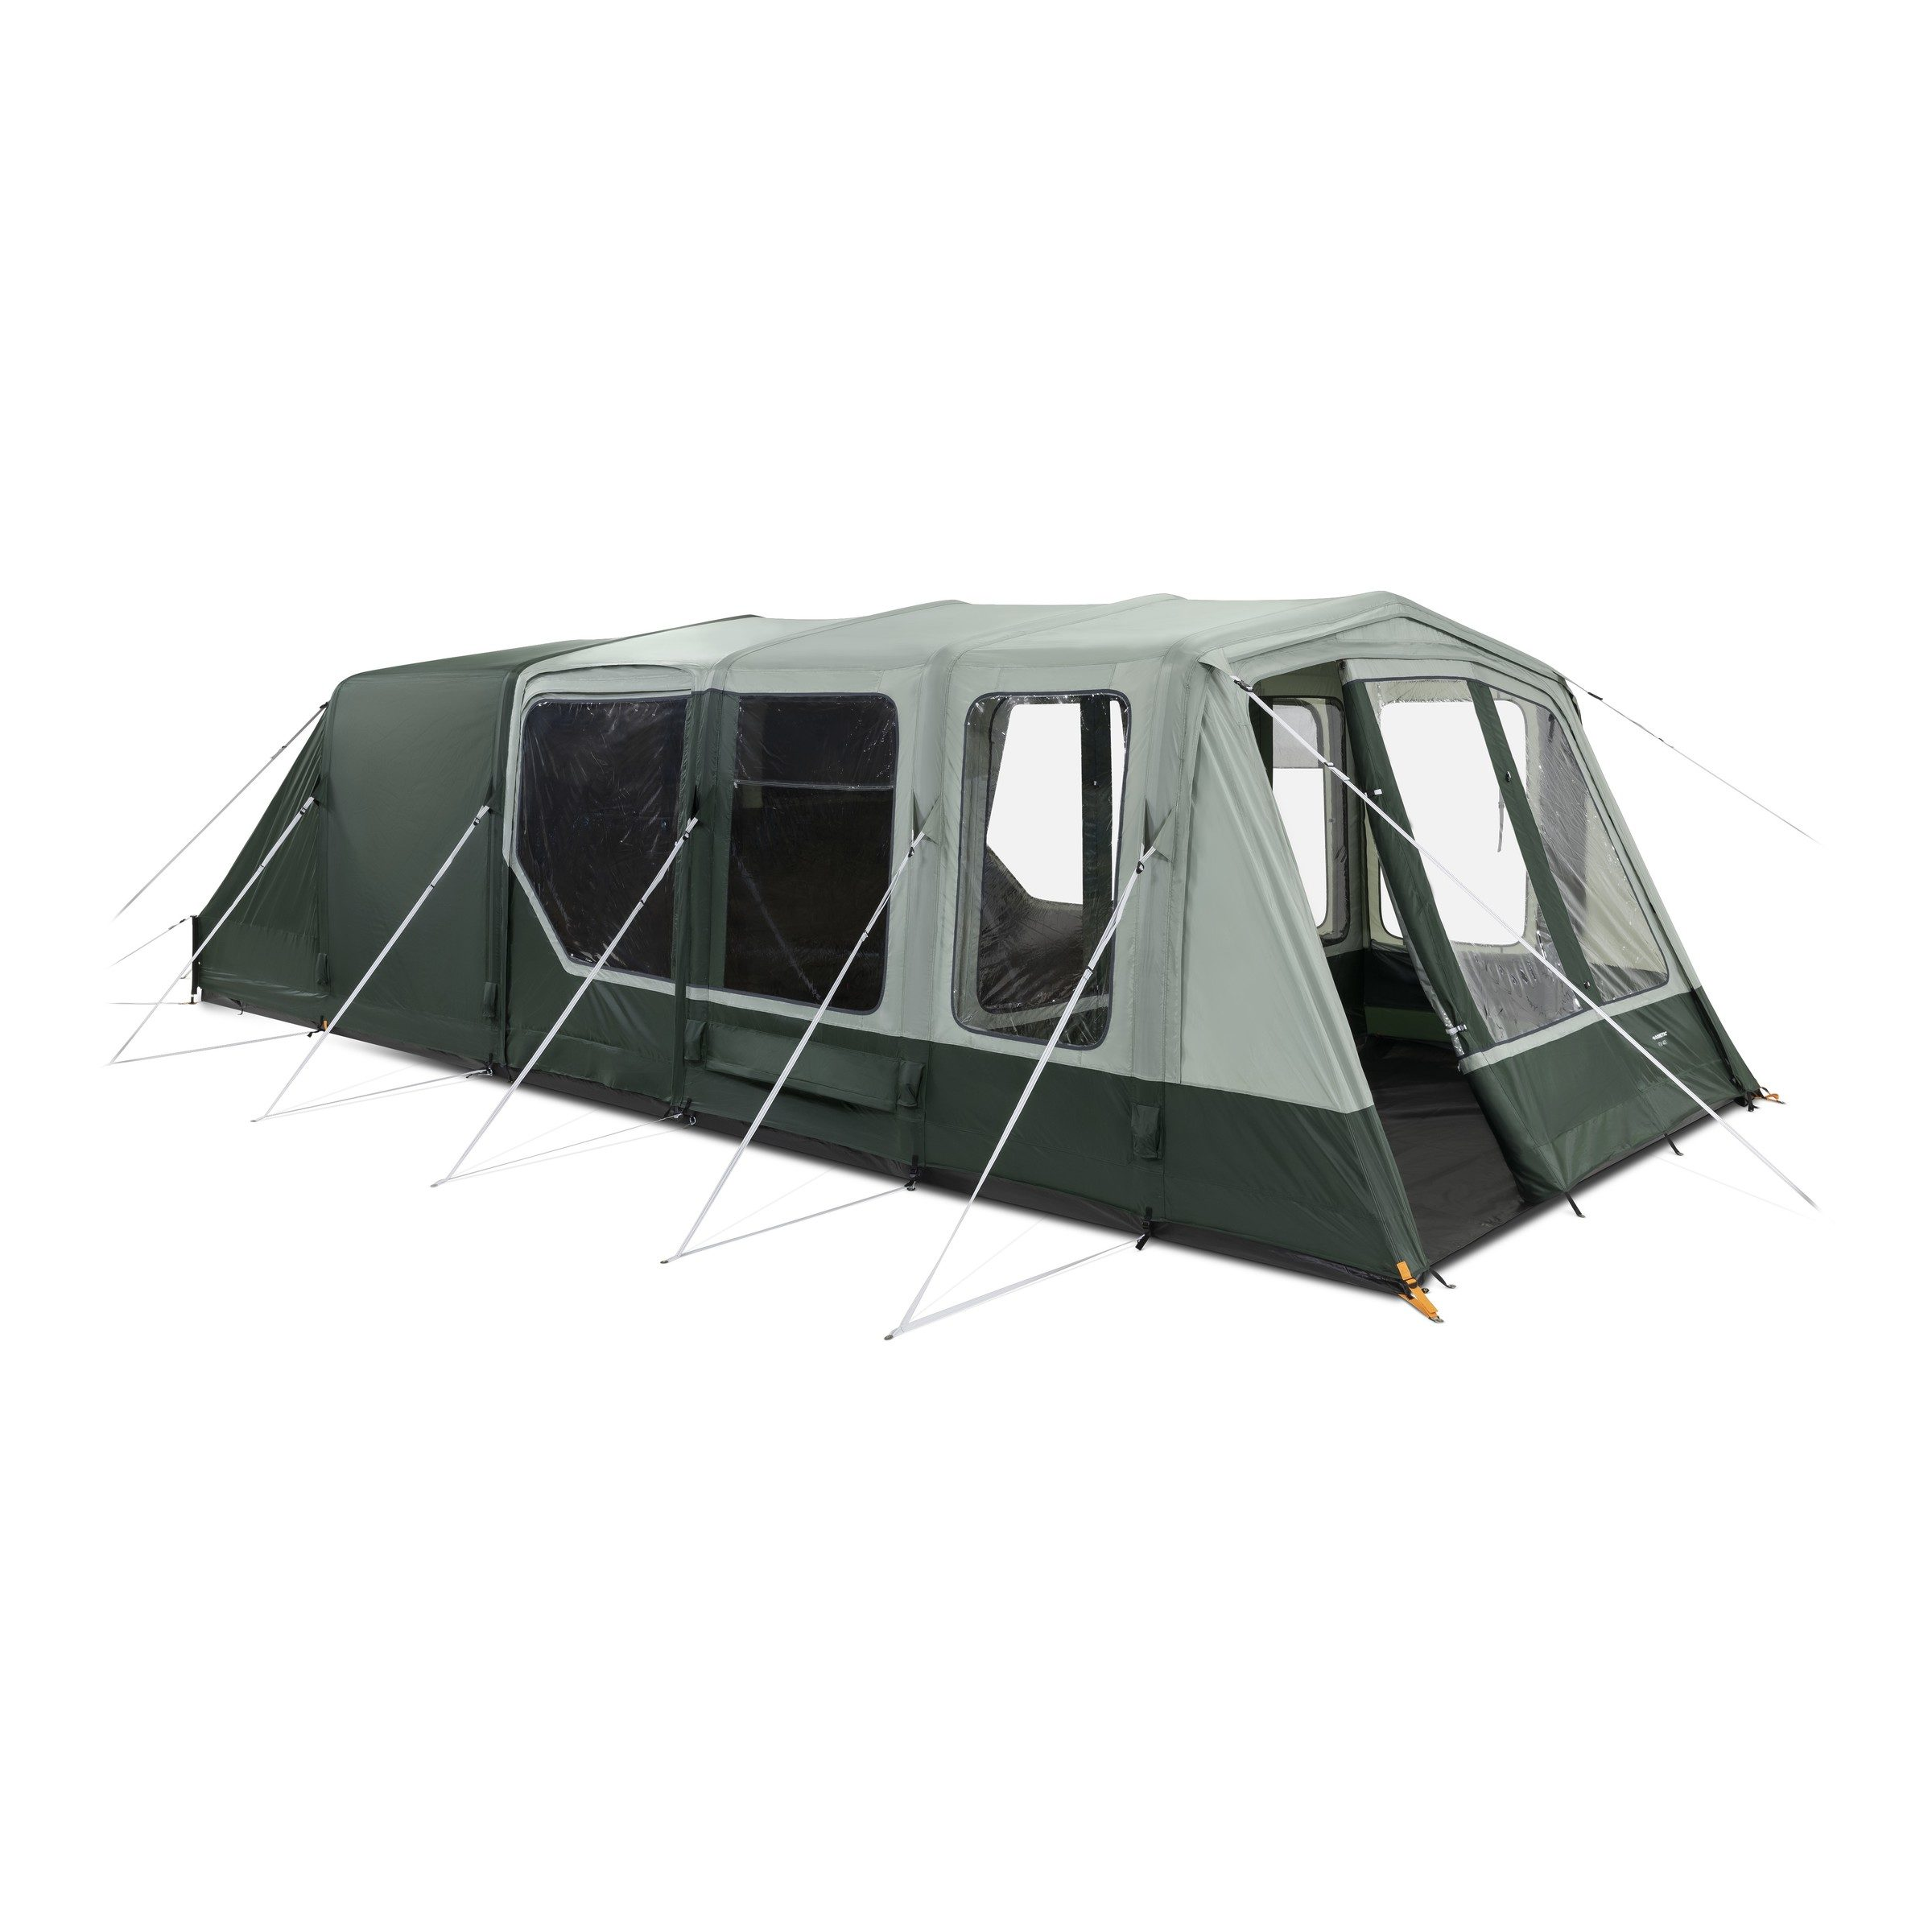 Dometic Ascension 401 Tent